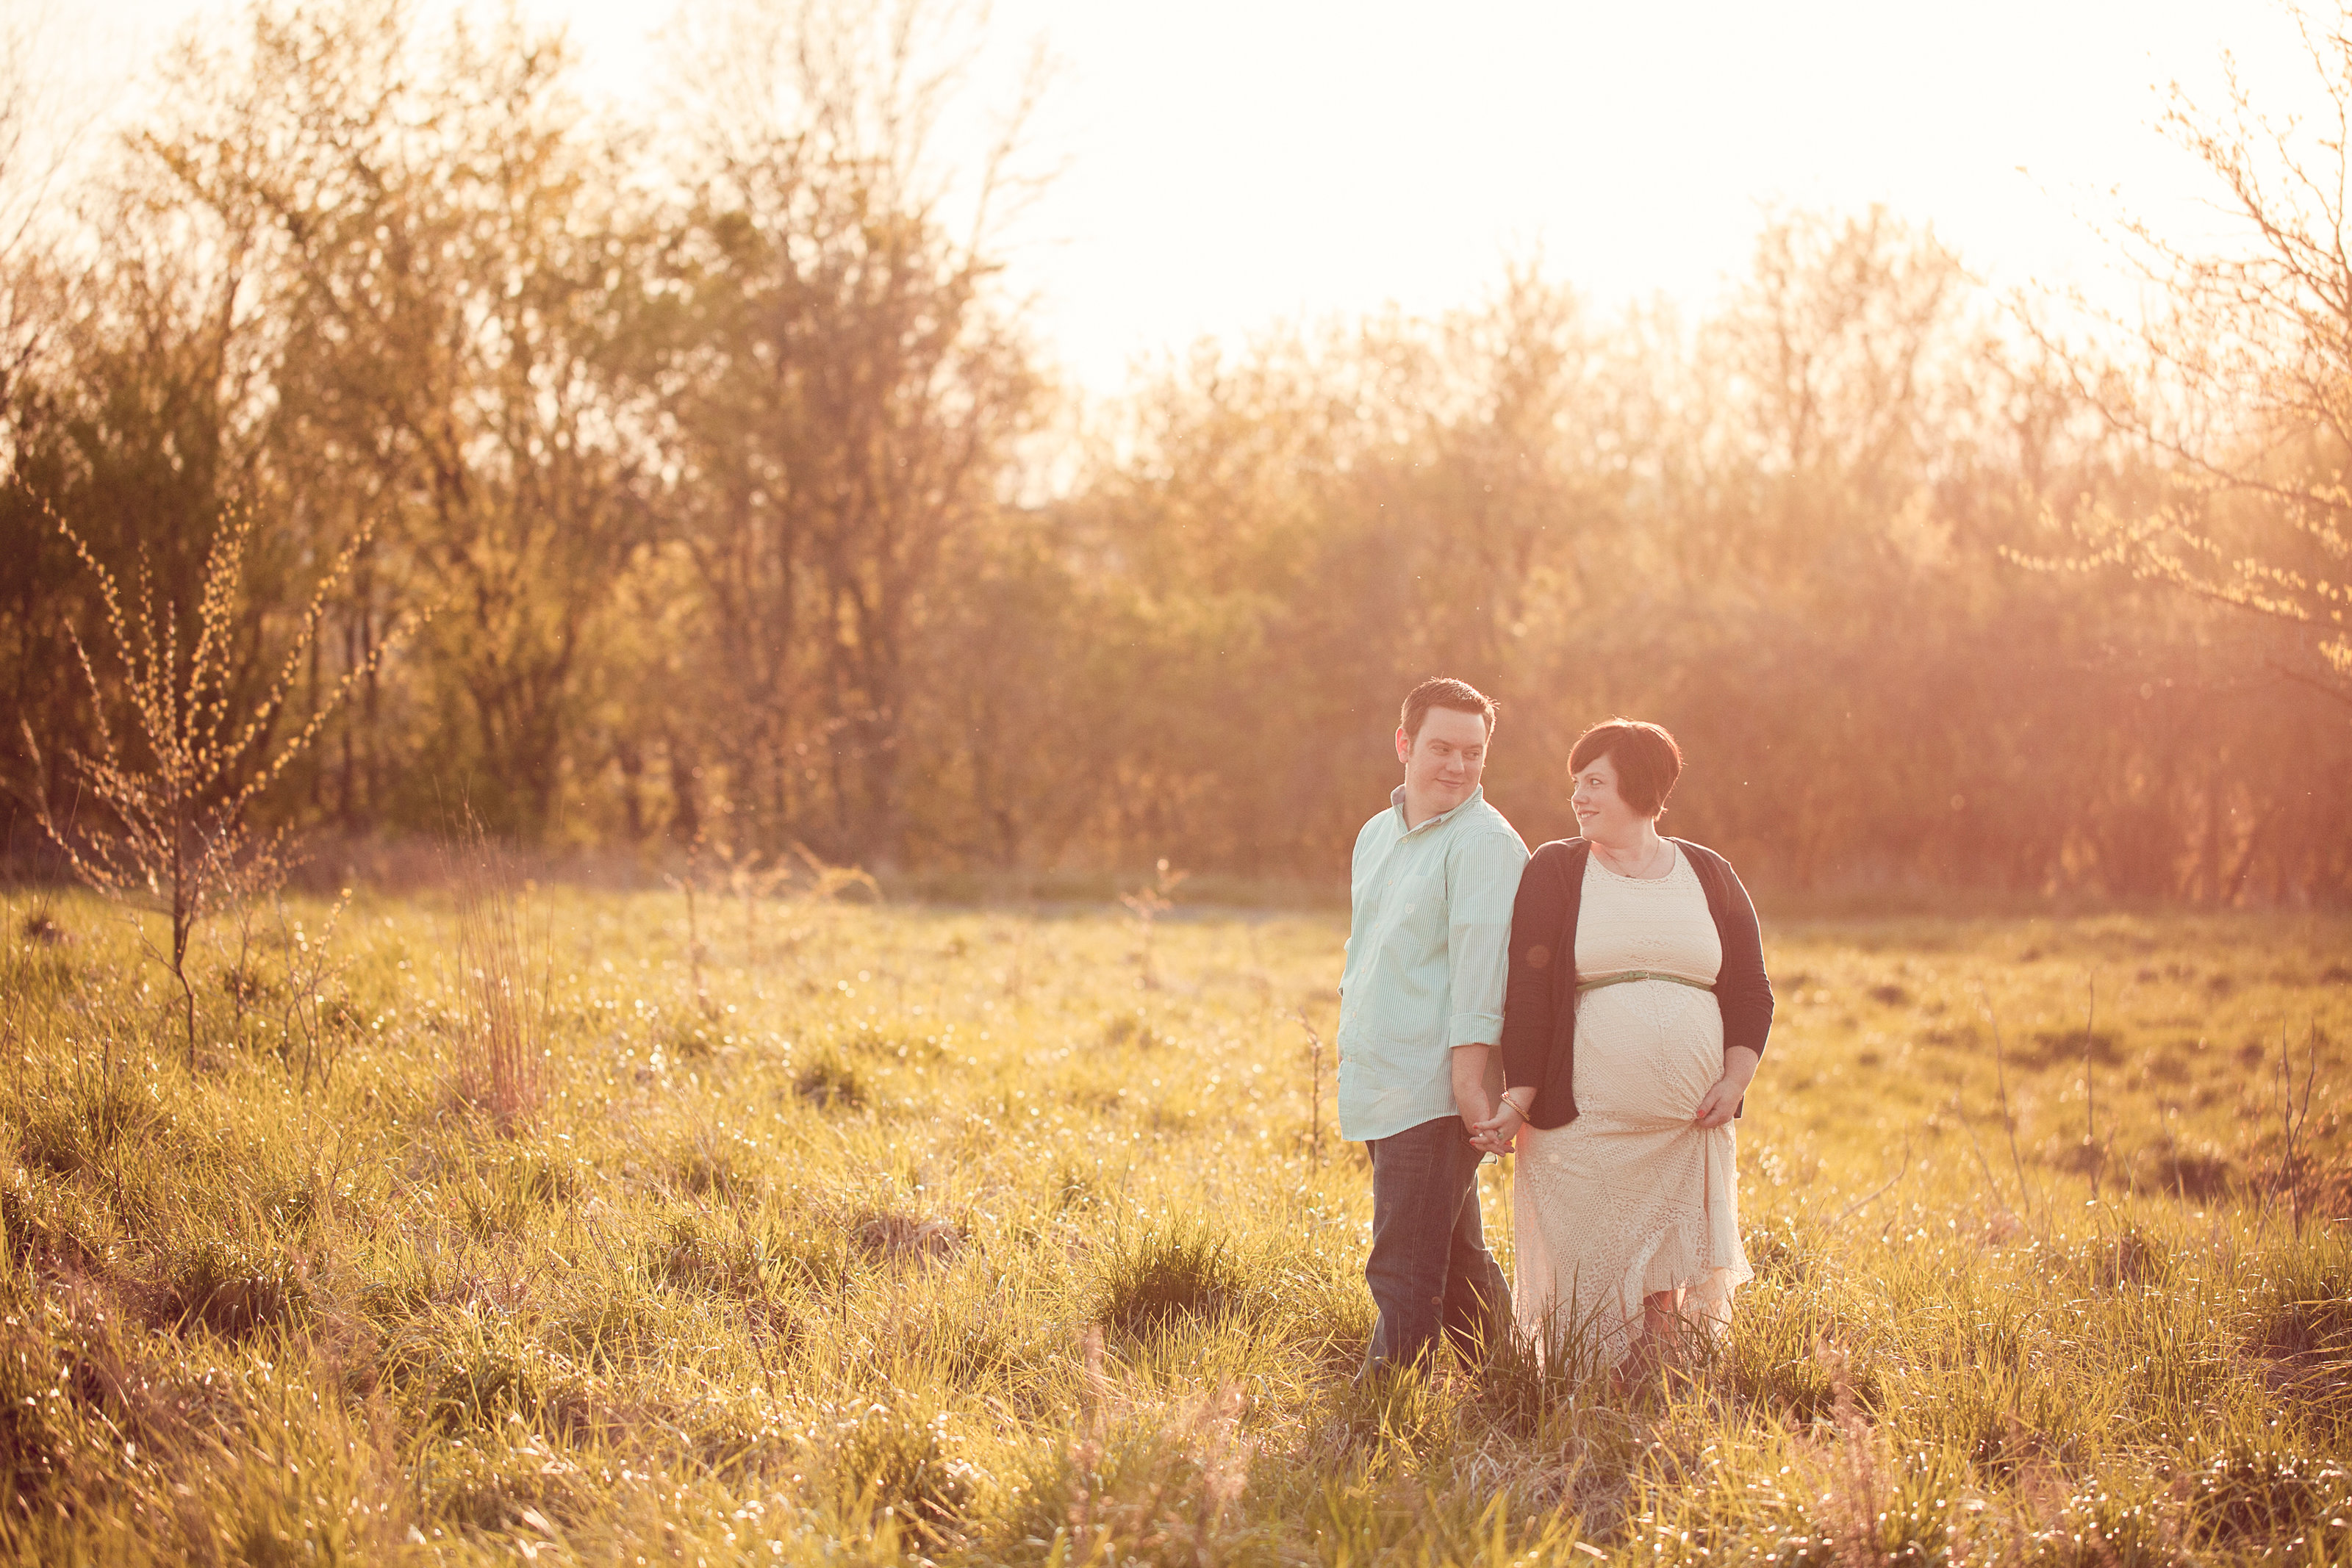 PA baby bump mom and dad stand in long grass photo at sunset